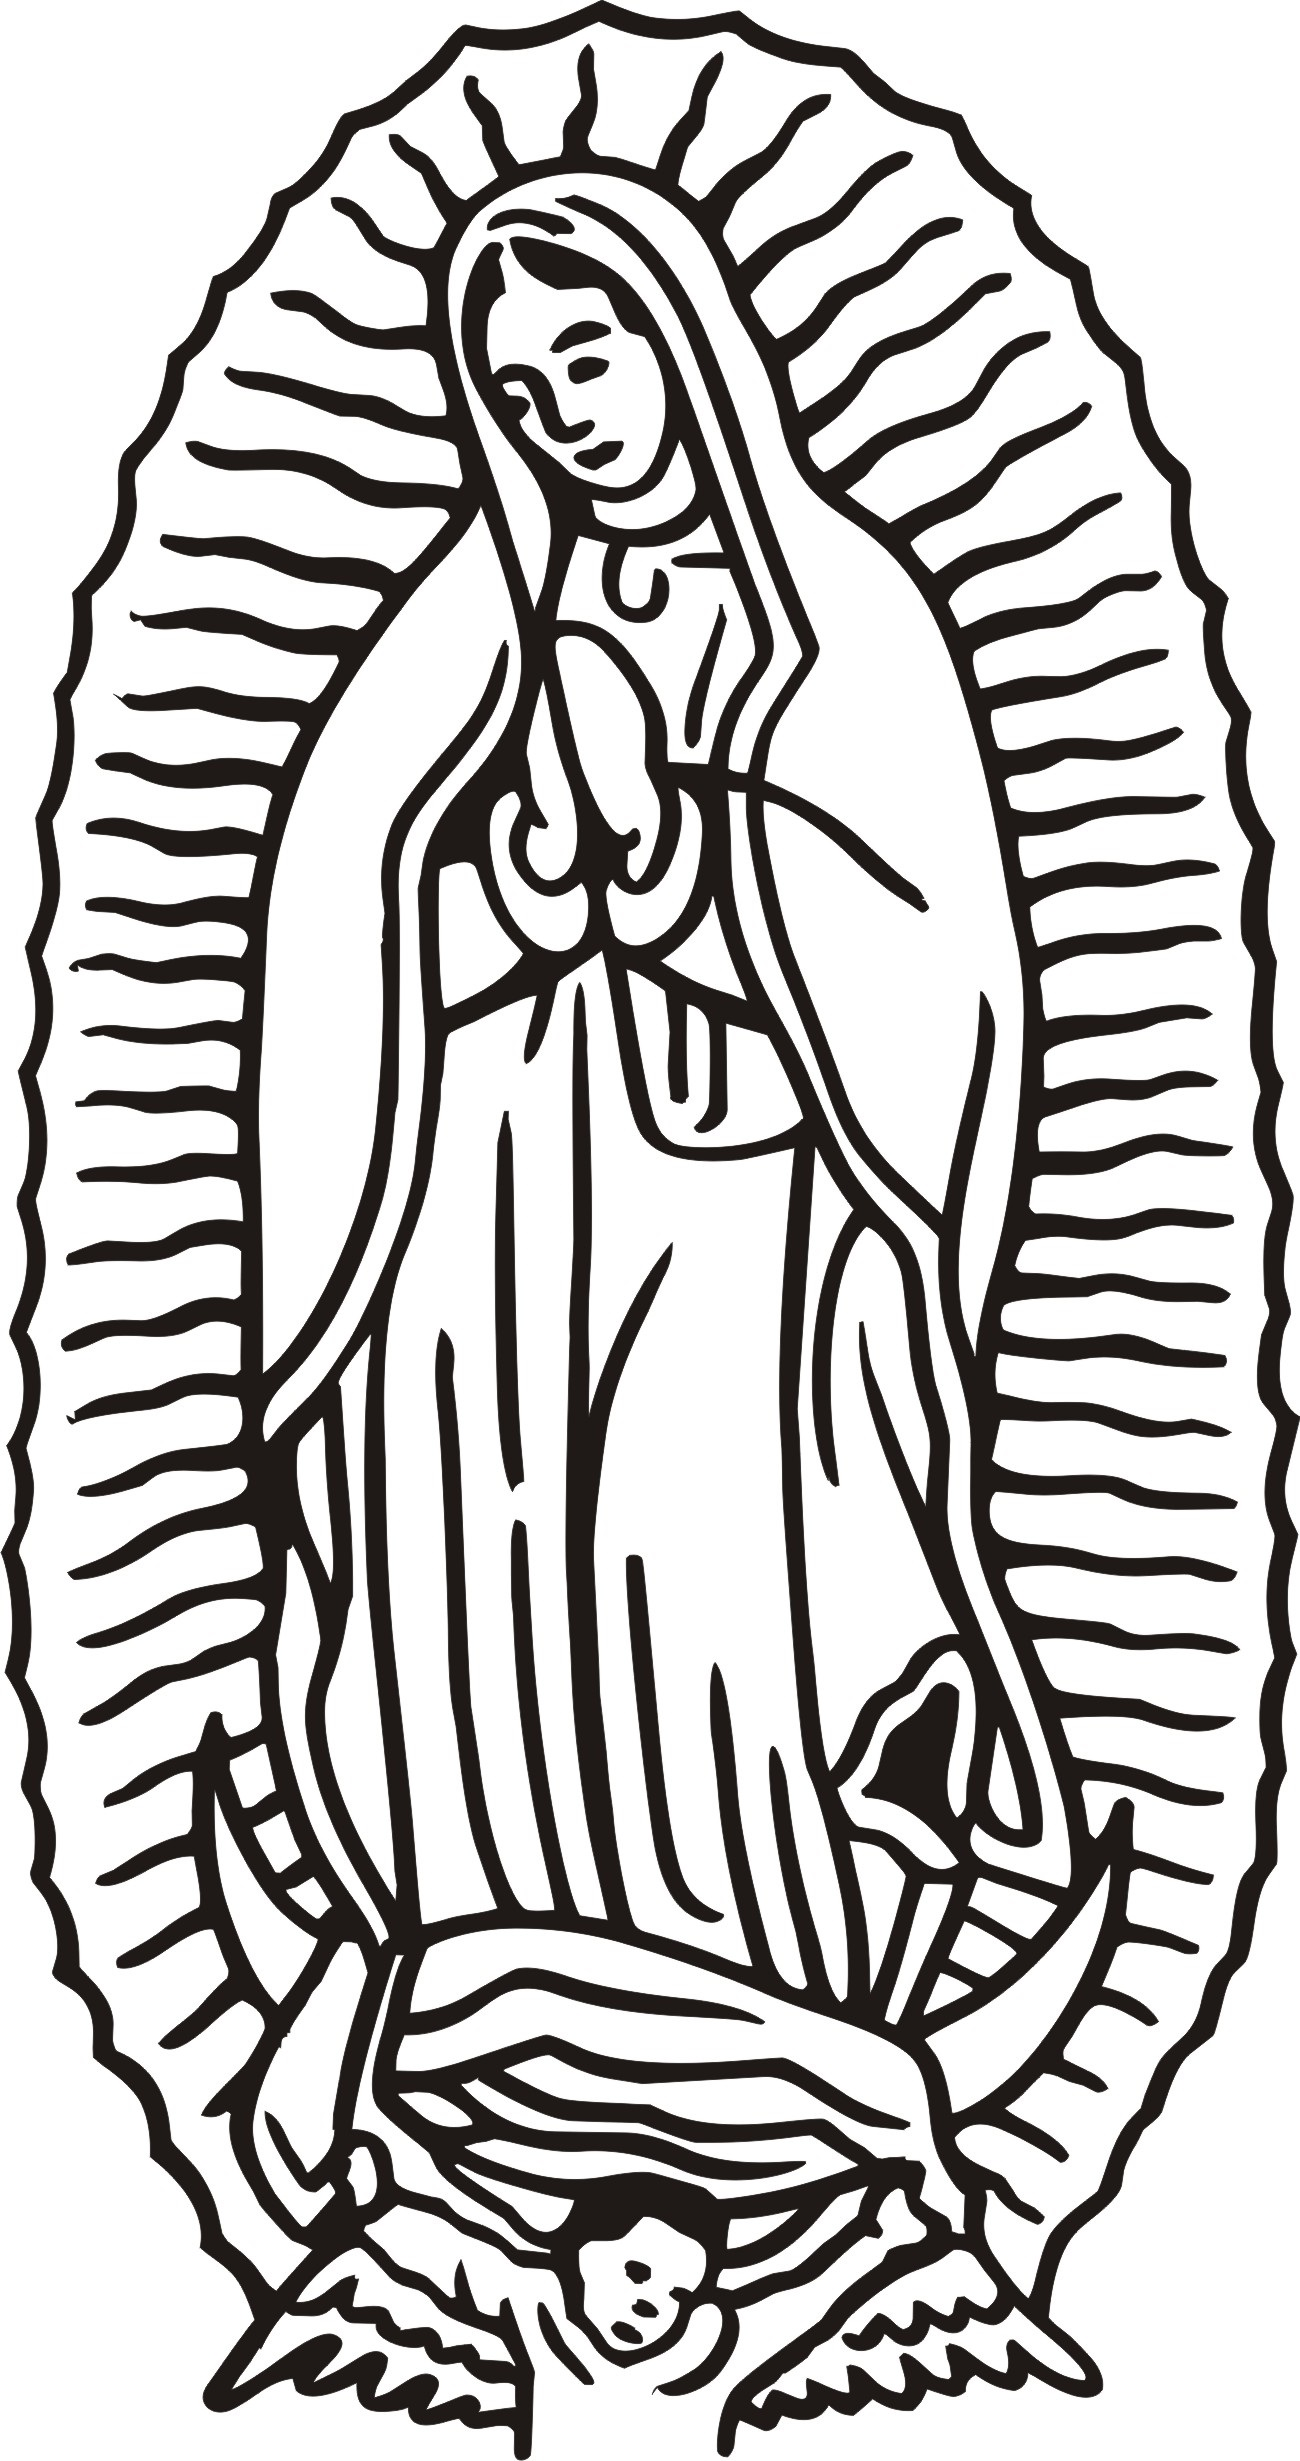 our lady of guadalupe coloring page 4